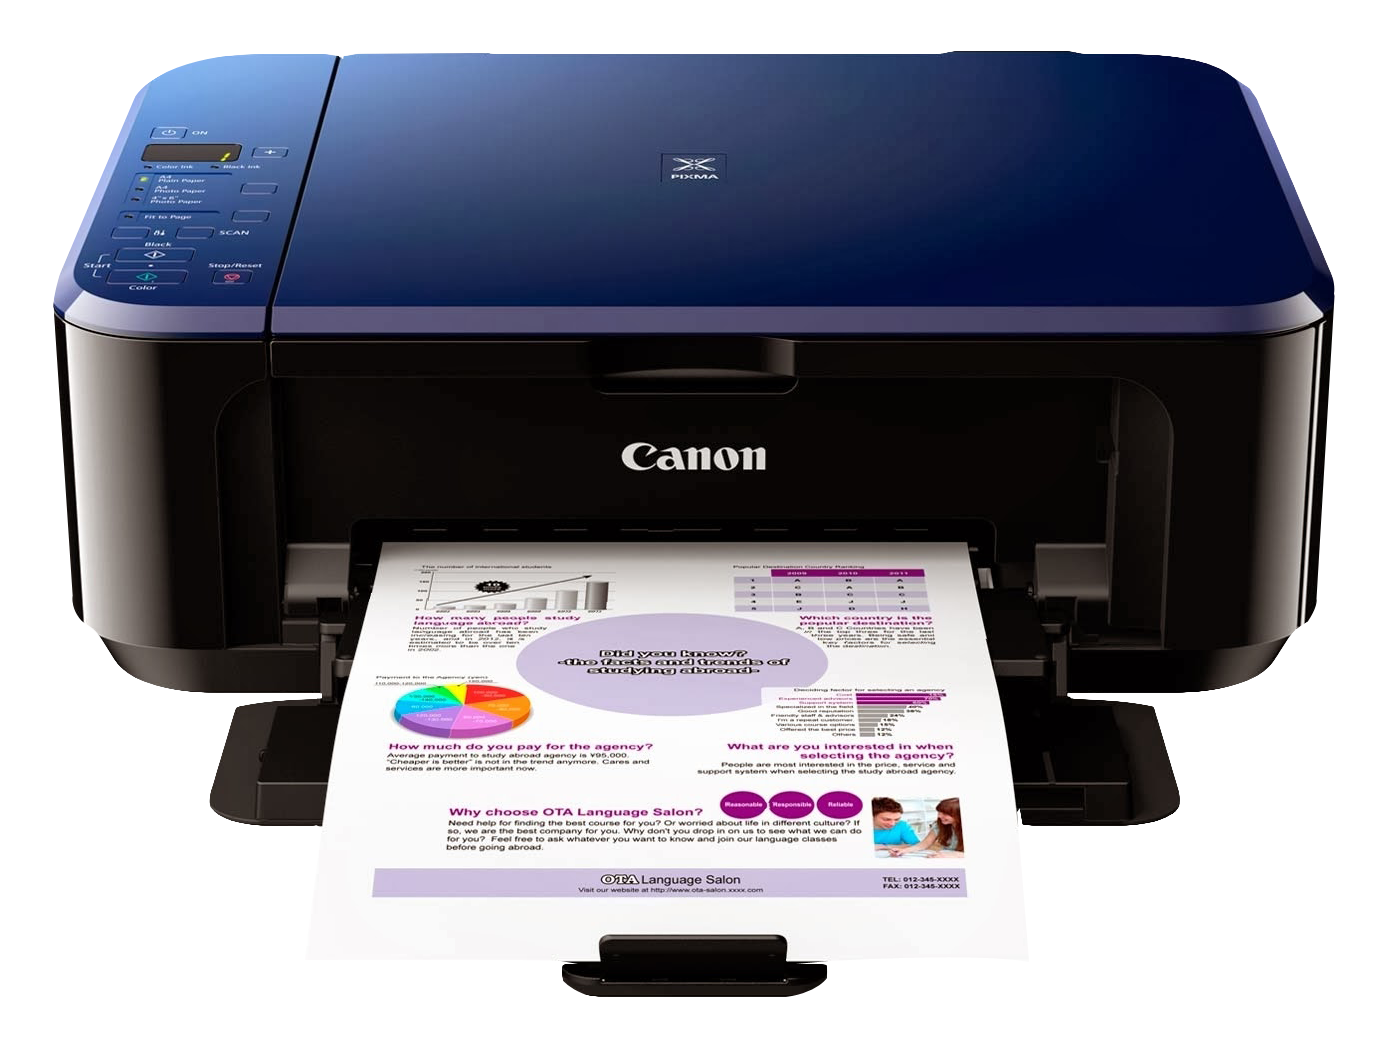 Printer Png - Canon Printer Transparent - 17106 - TransparentPNG